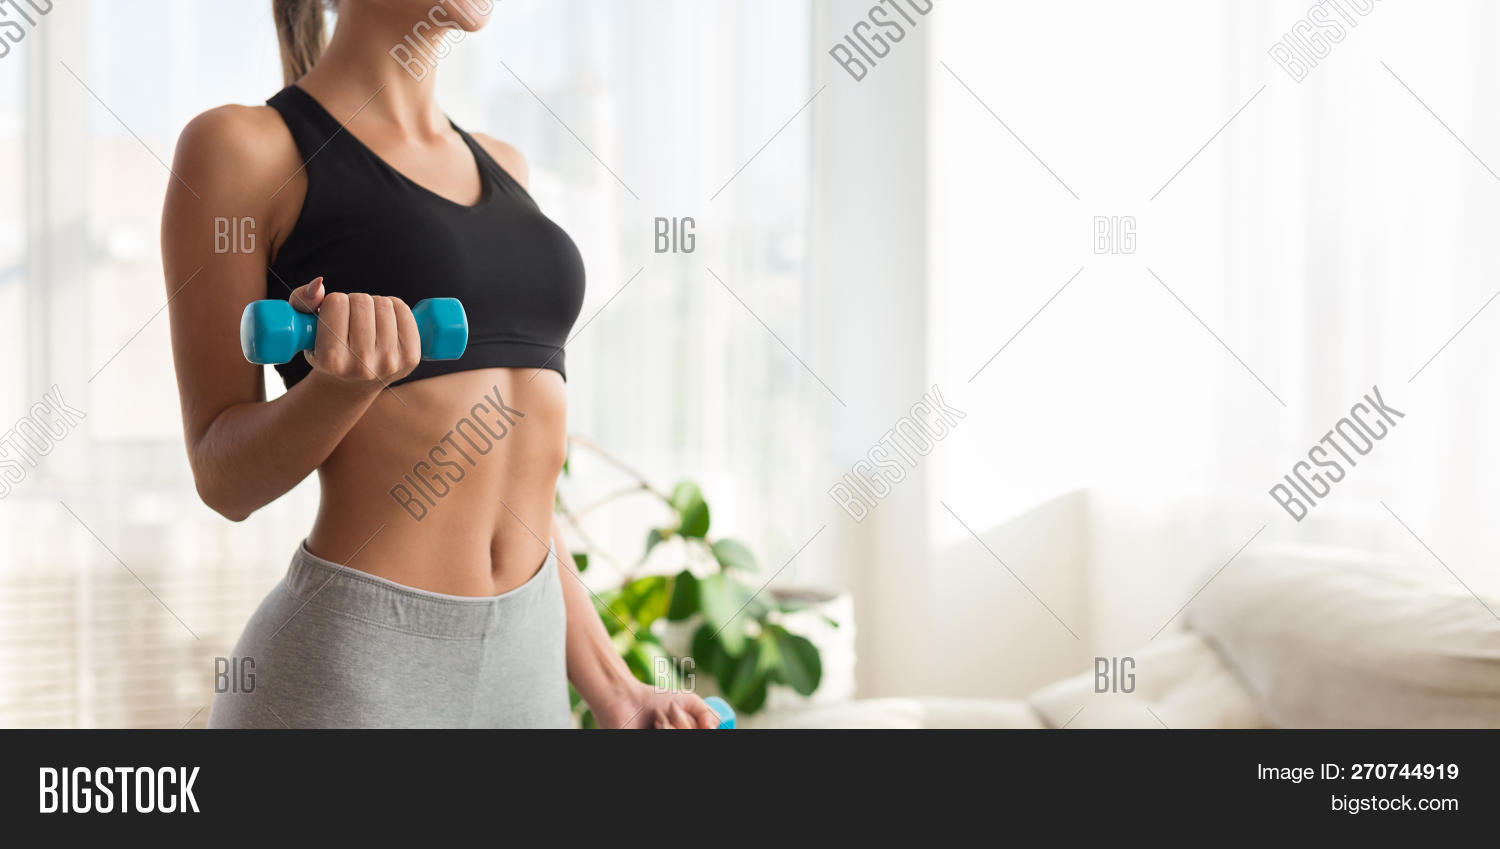 Weight Exercise  Slim Image & Photo (Free Trial) | Bigstock